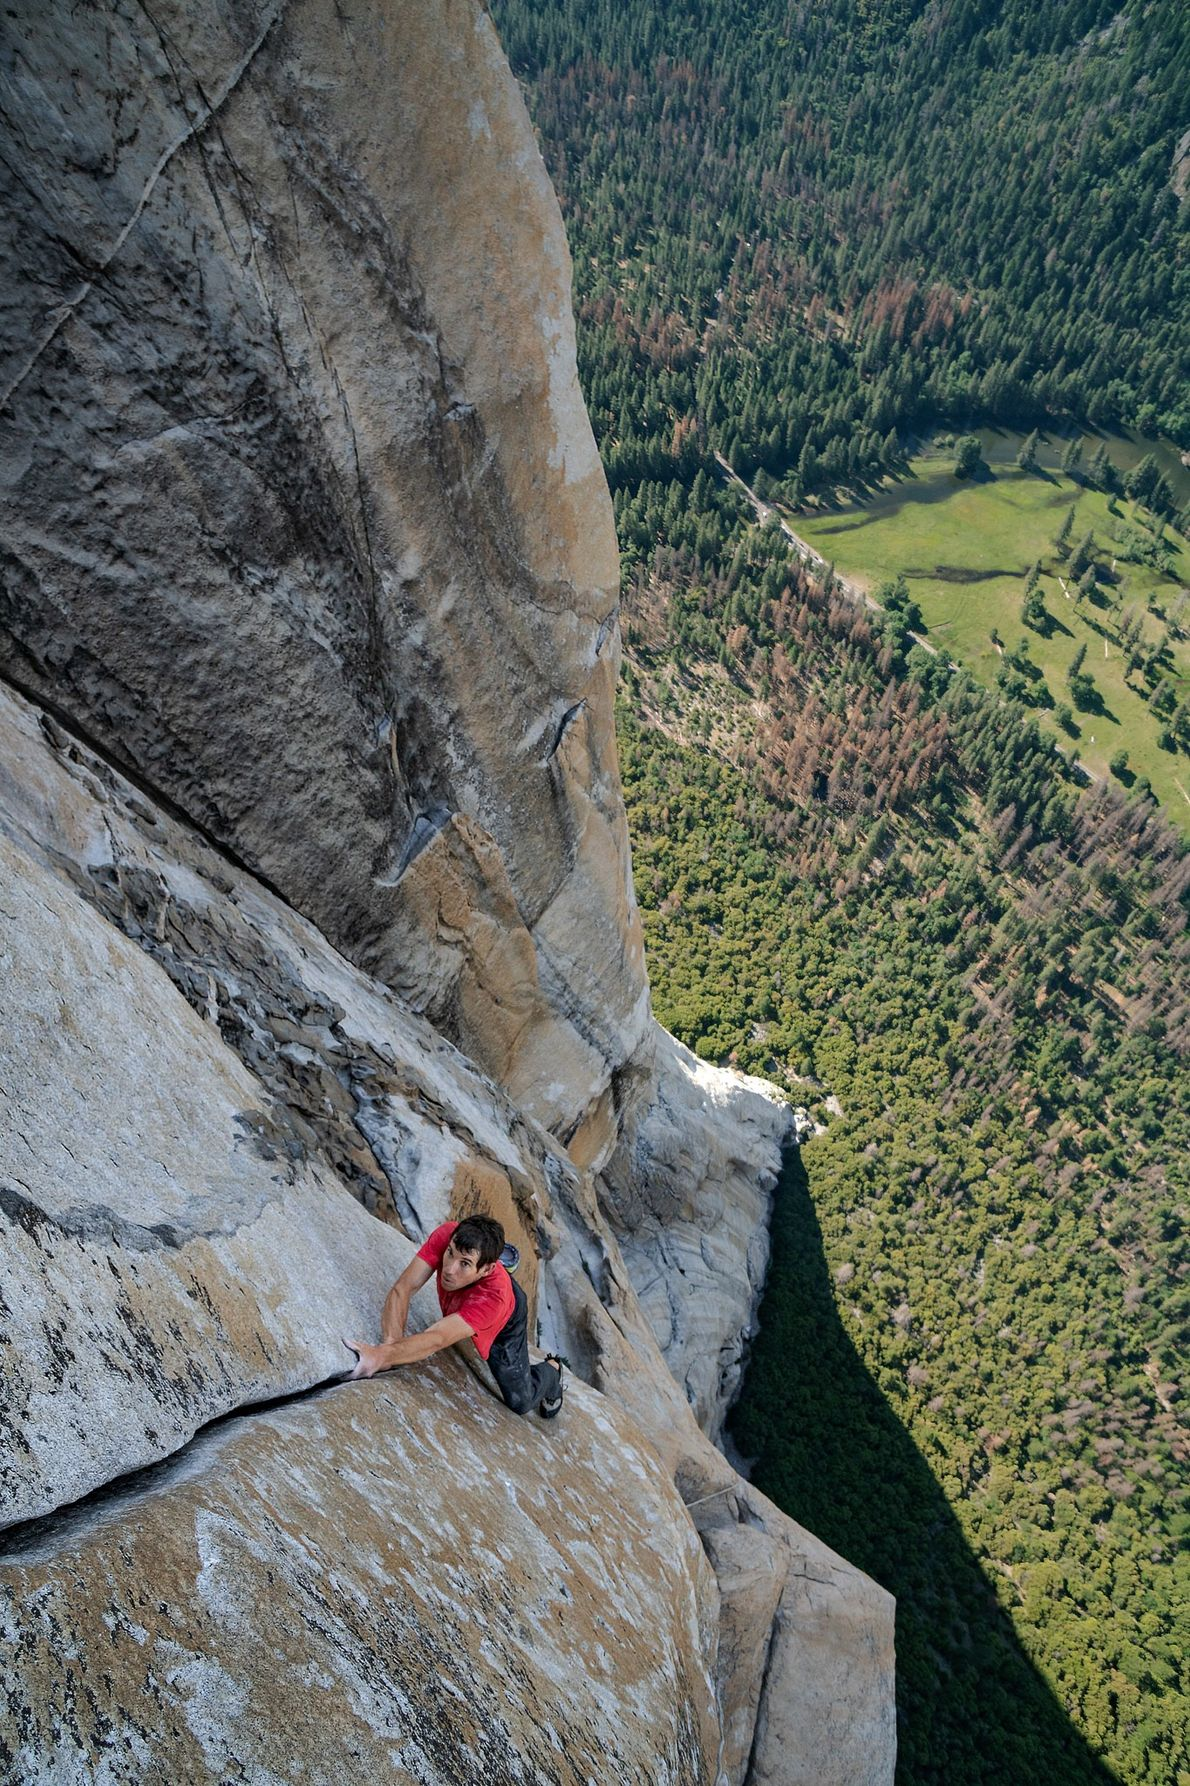 YOSEMITE, California For a decade before Alex Honnold made his celebrated free solo up Yosemite National Park's ...